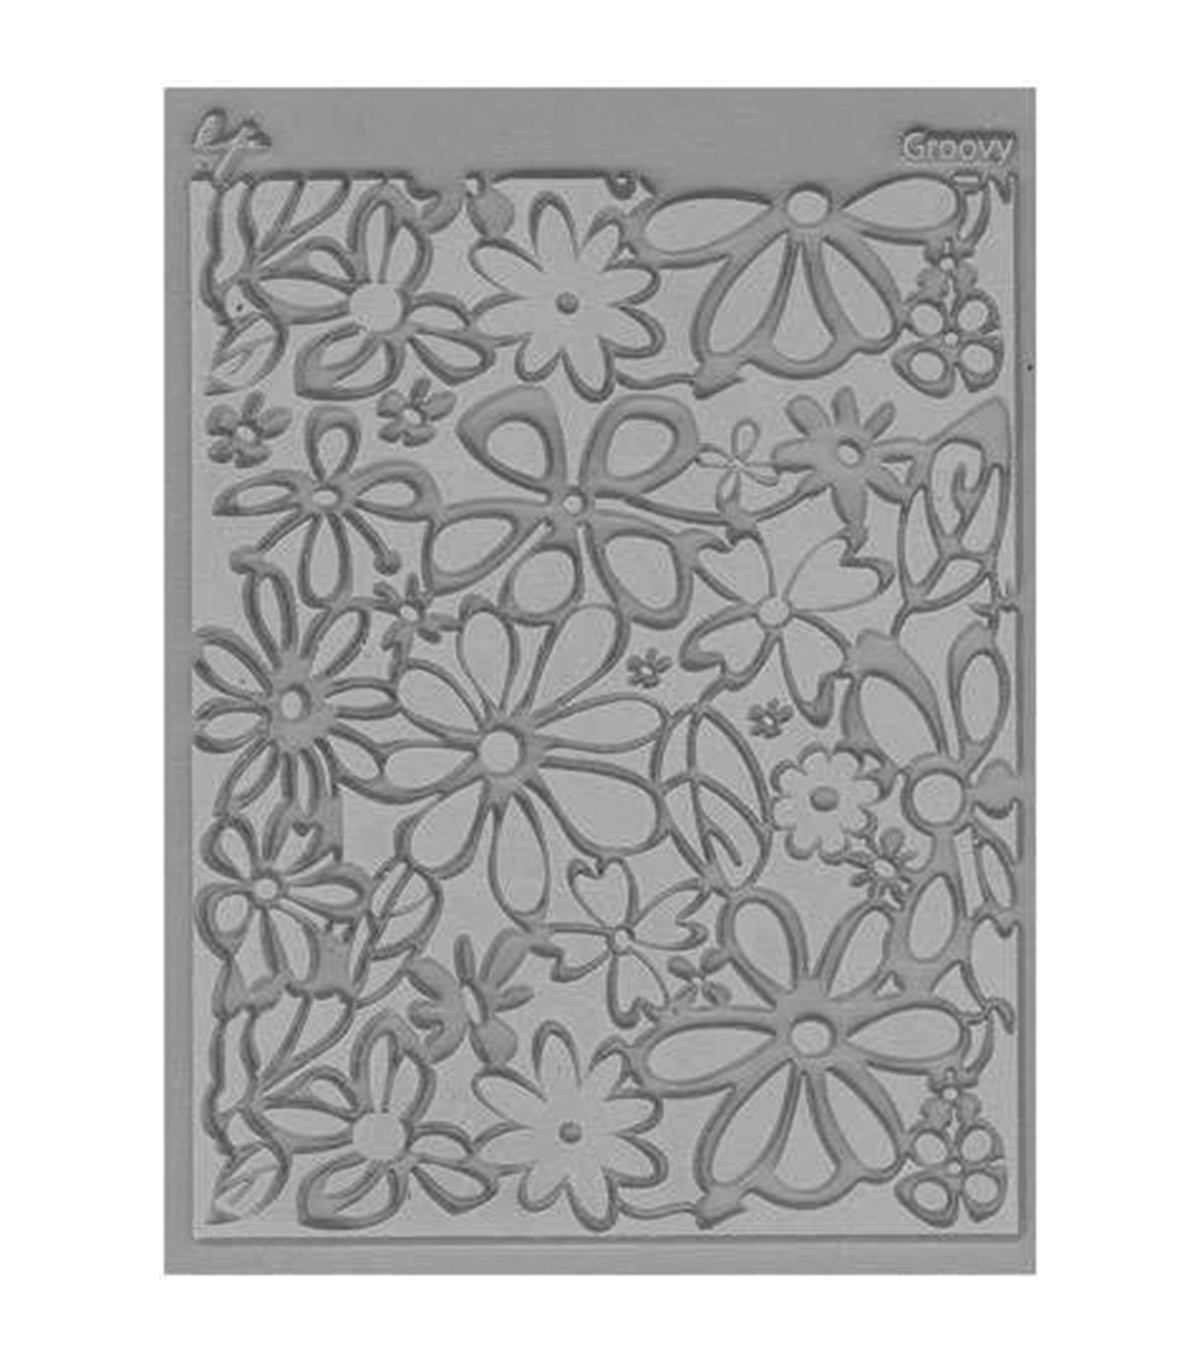 Great Create Pavelka Texture Stamp - Groovy